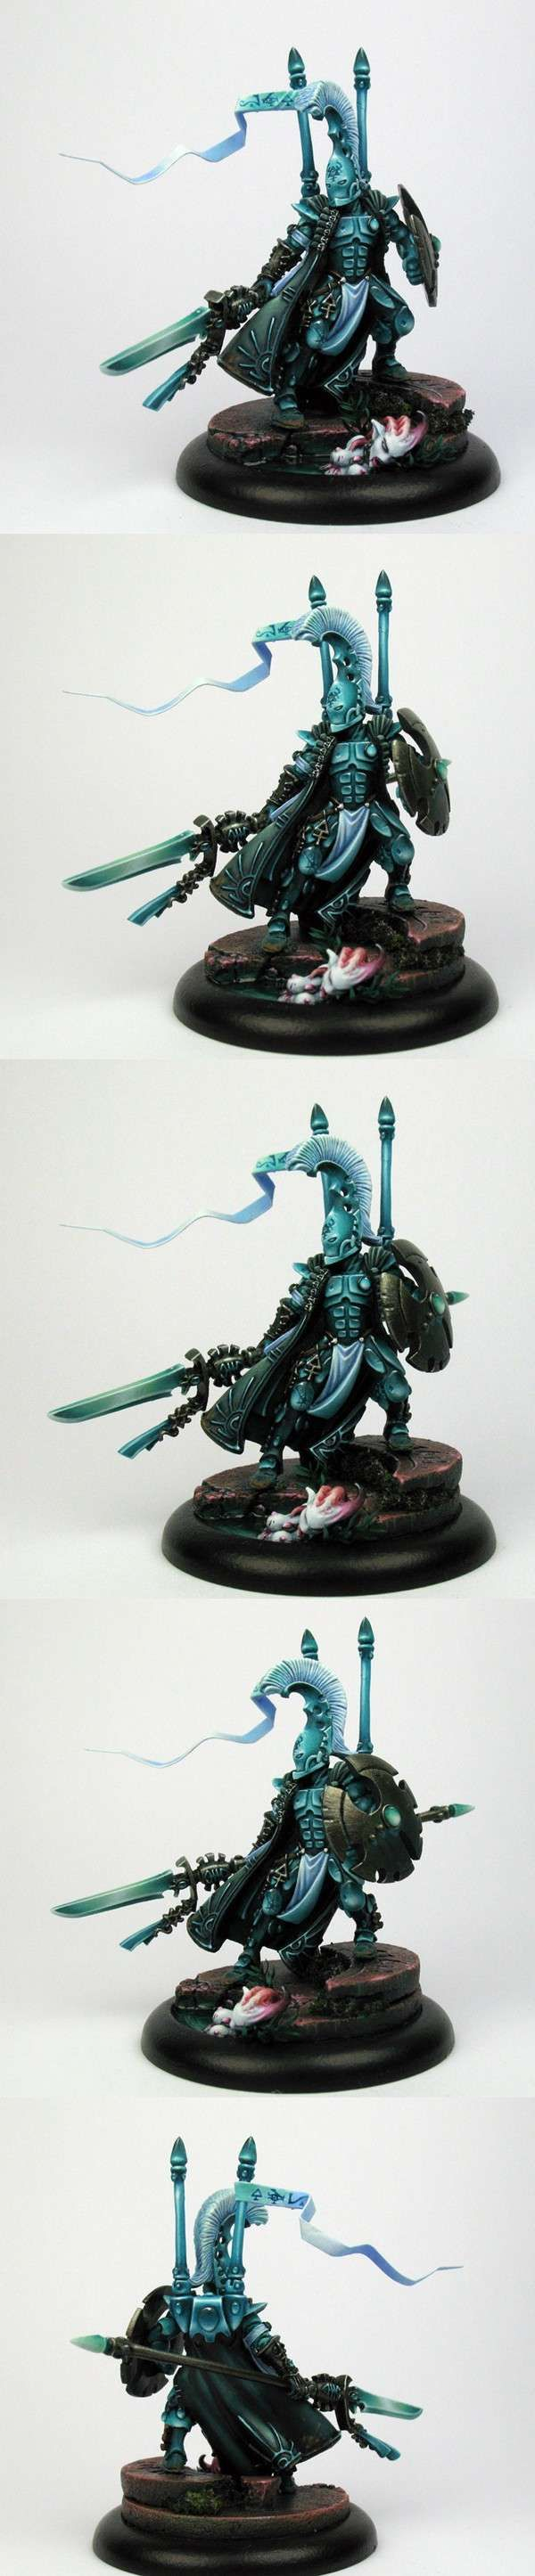 Warhammer 40k Eldar Autarch, custom posed, very dynamic lighting and very thorough, subtle shading